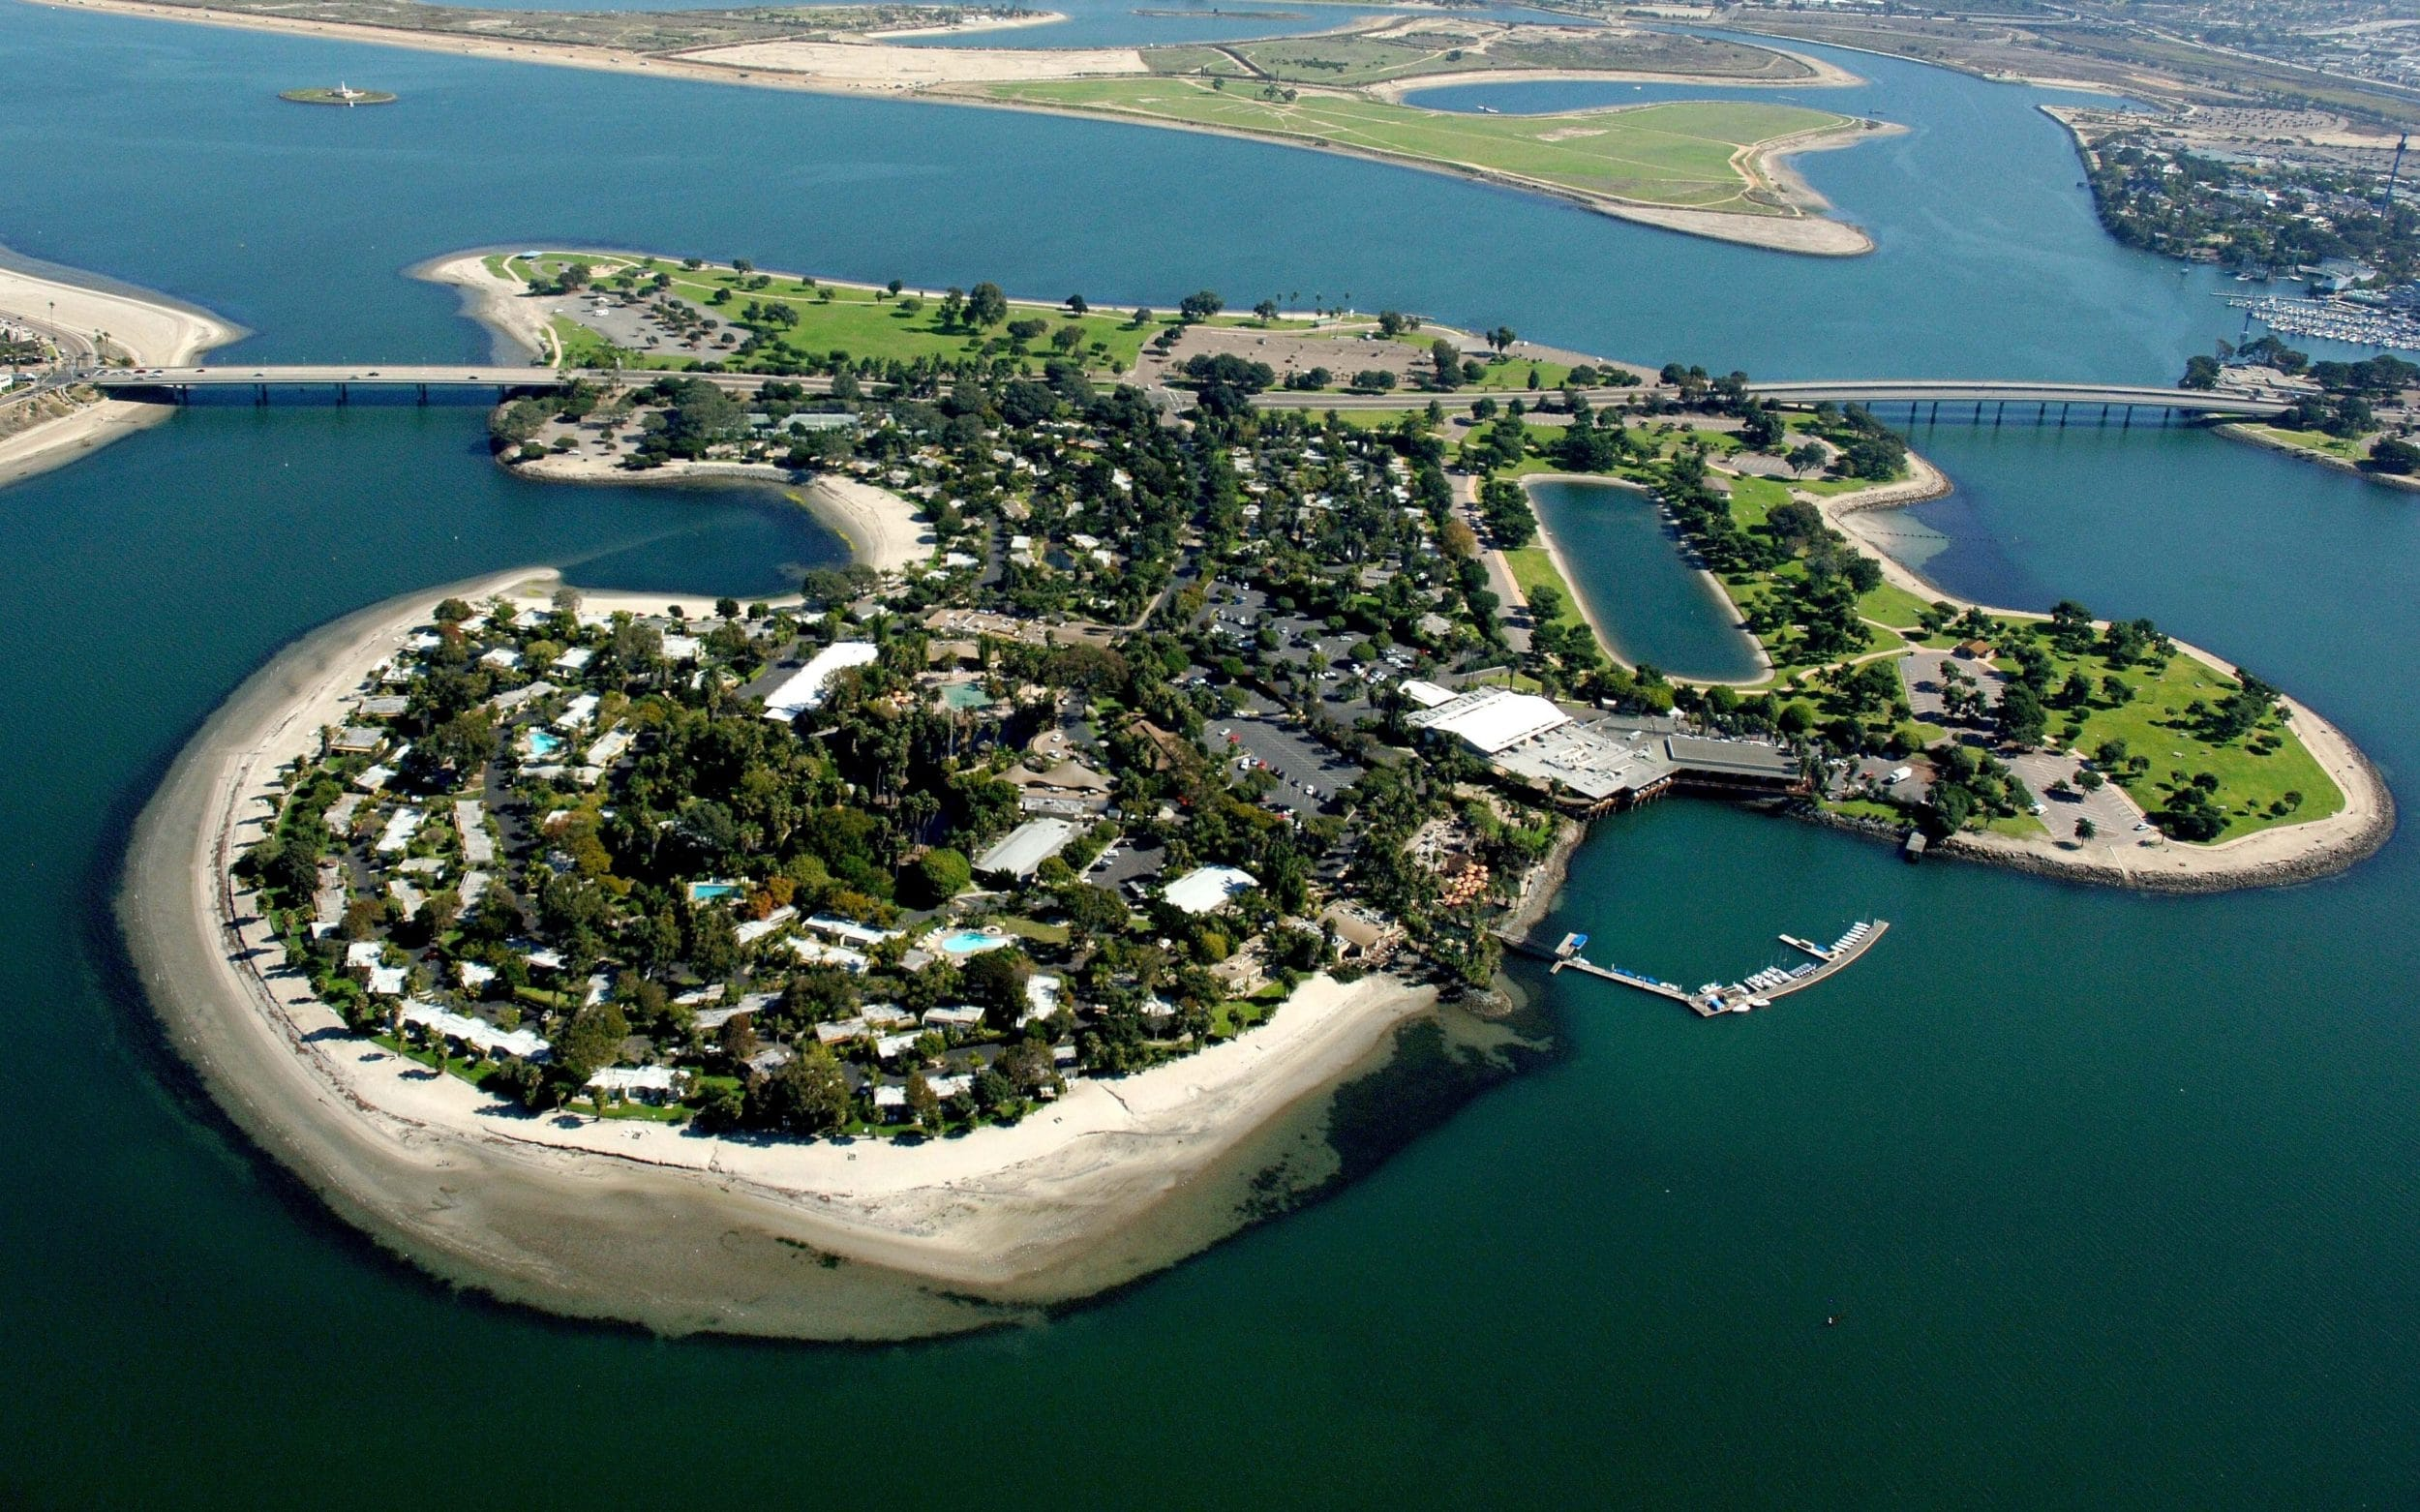 Aerial view of Paradise Point resort on San Diego's Mission Bay